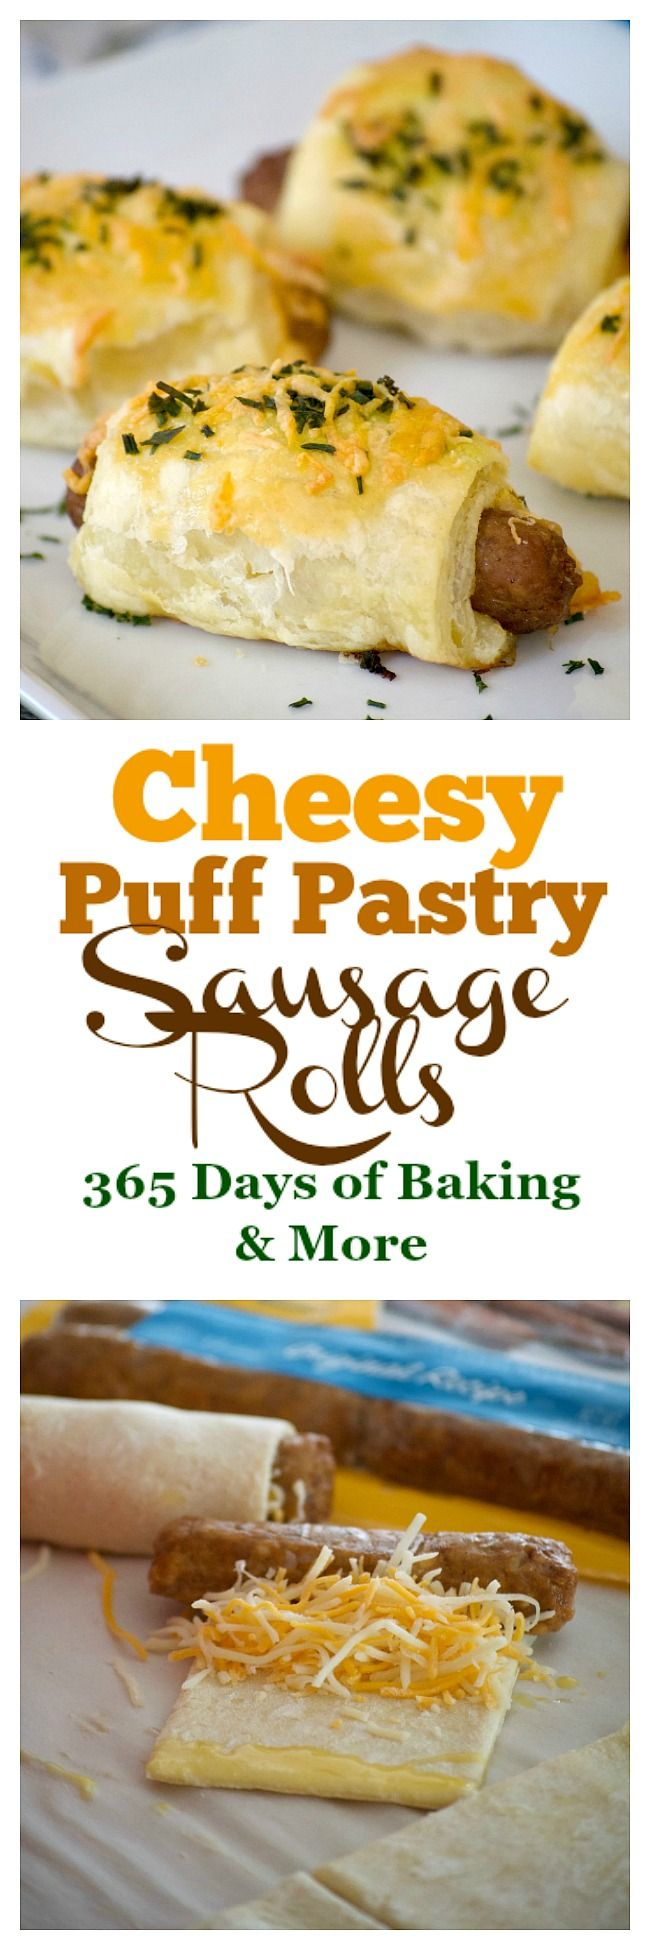 These Cheesy Puff Pastry Sausage Rolls are light and airy with delicious bites of cheese and @jvillesausage breakfast sausage links. They're an appetizing addition for any Easter brunch. #ad